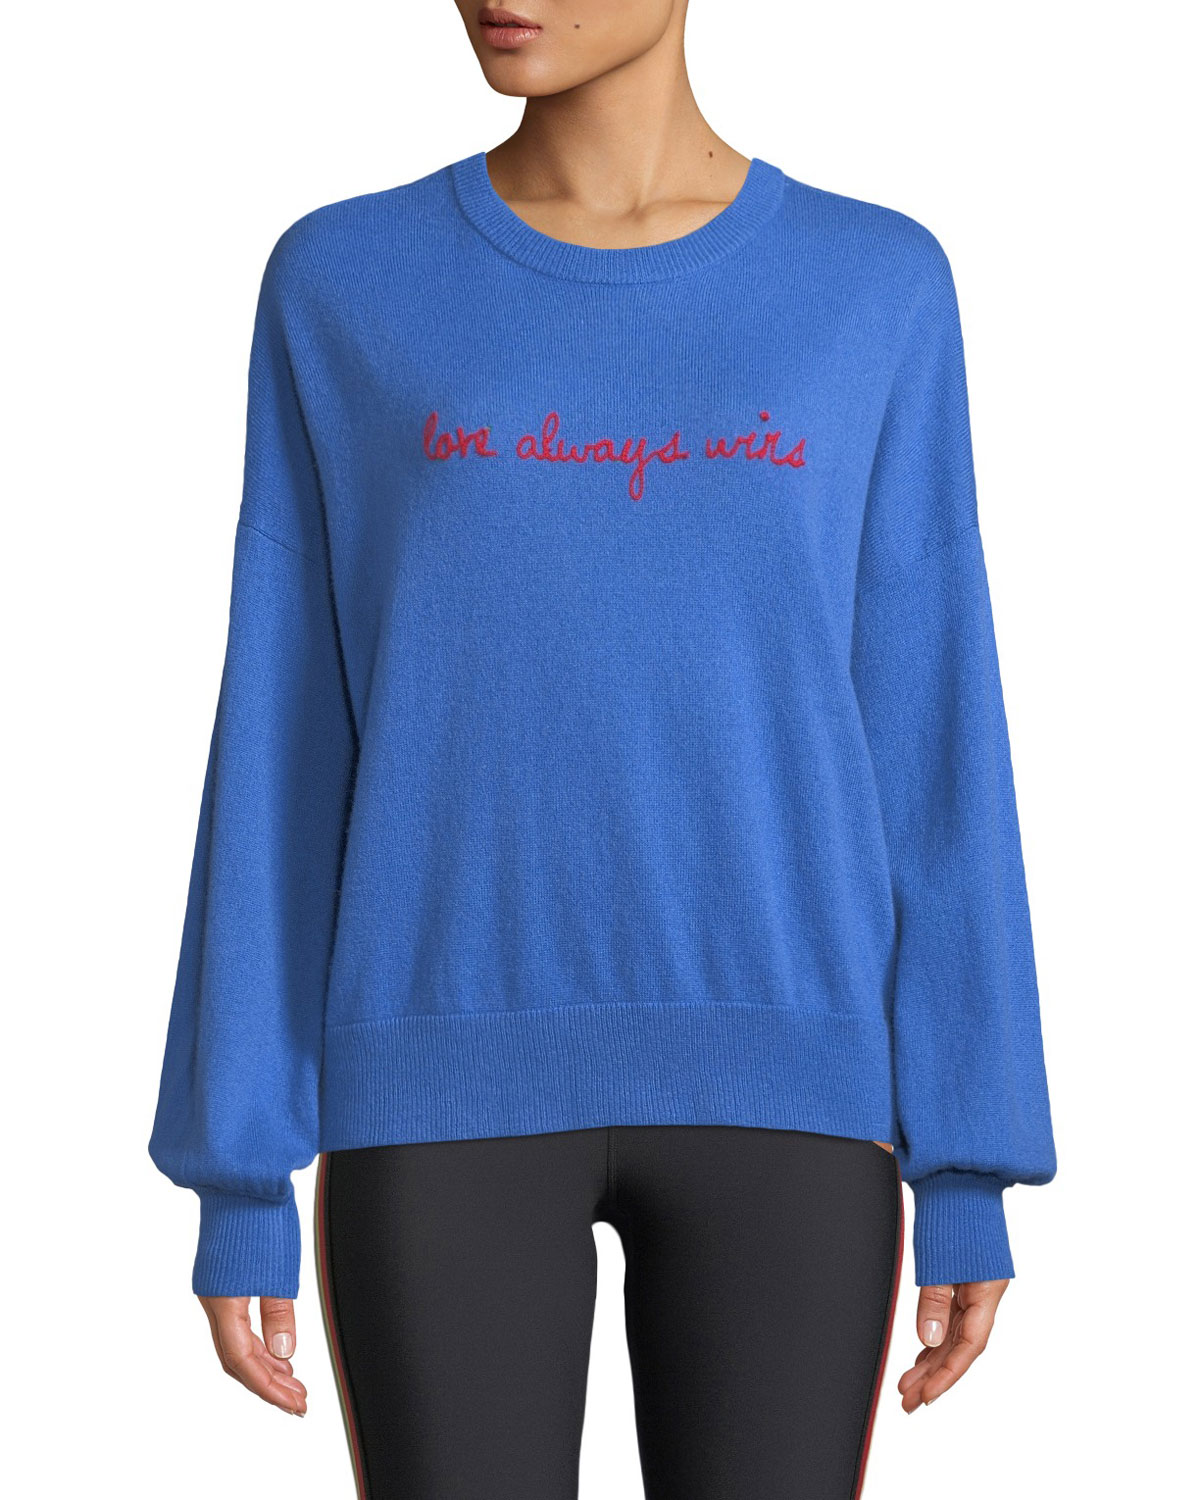 Love Wins Slogan Wool-Cashmere Pullover Sweater